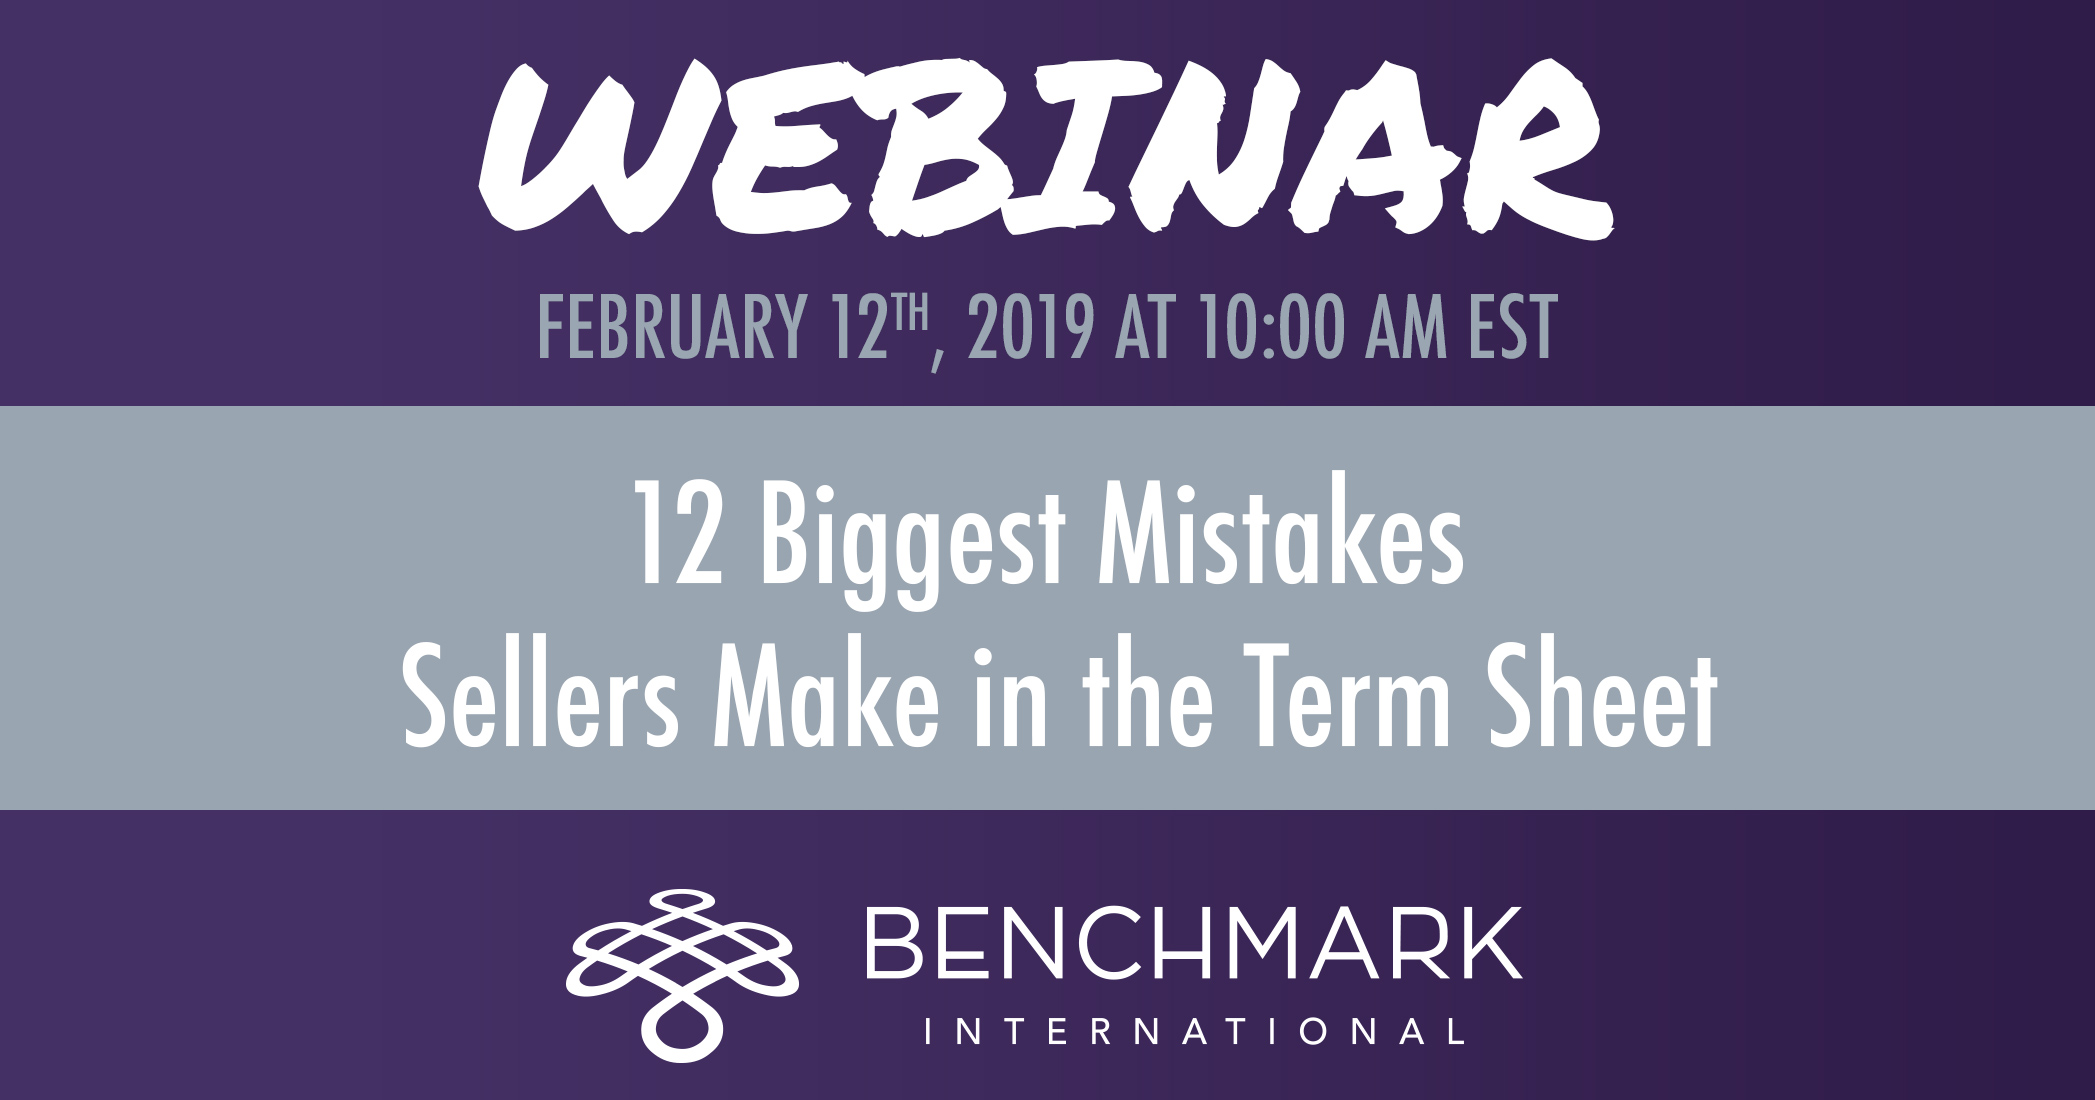 Upcoming Webinar: 12 Biggest Mistakes Sellers Make in the Term Sheet